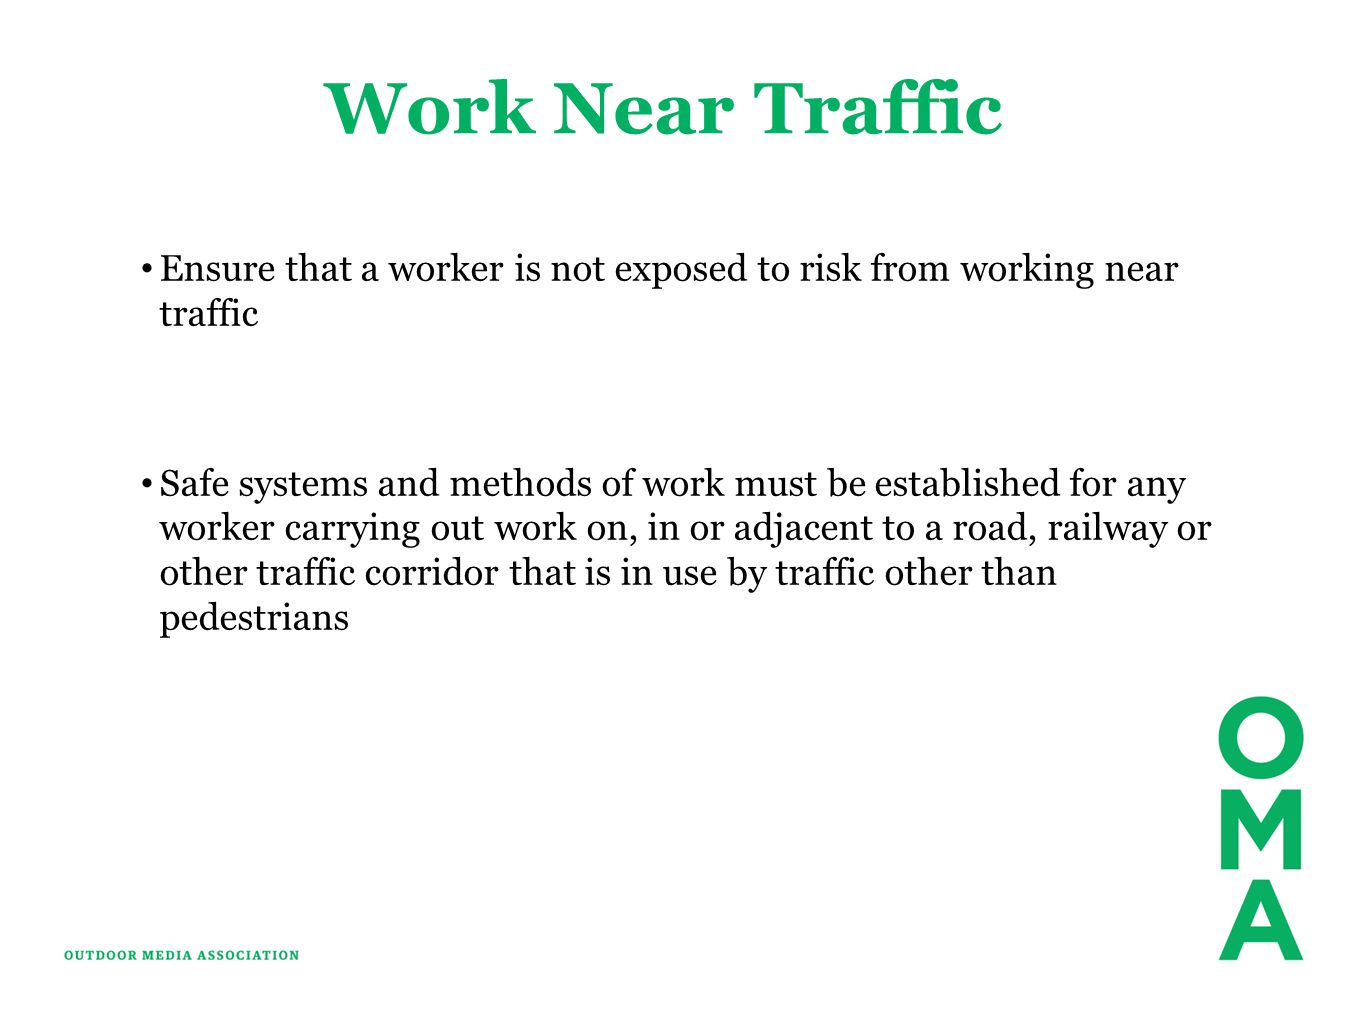 Work Near Traffic Ensure that a worker is not exposed to risk from working near traffic Safe systems and methods of work must be established for any worker carrying out work on, in or adjacent to a road, railway or other traffic corridor that is in use by traffic other than pedestrians